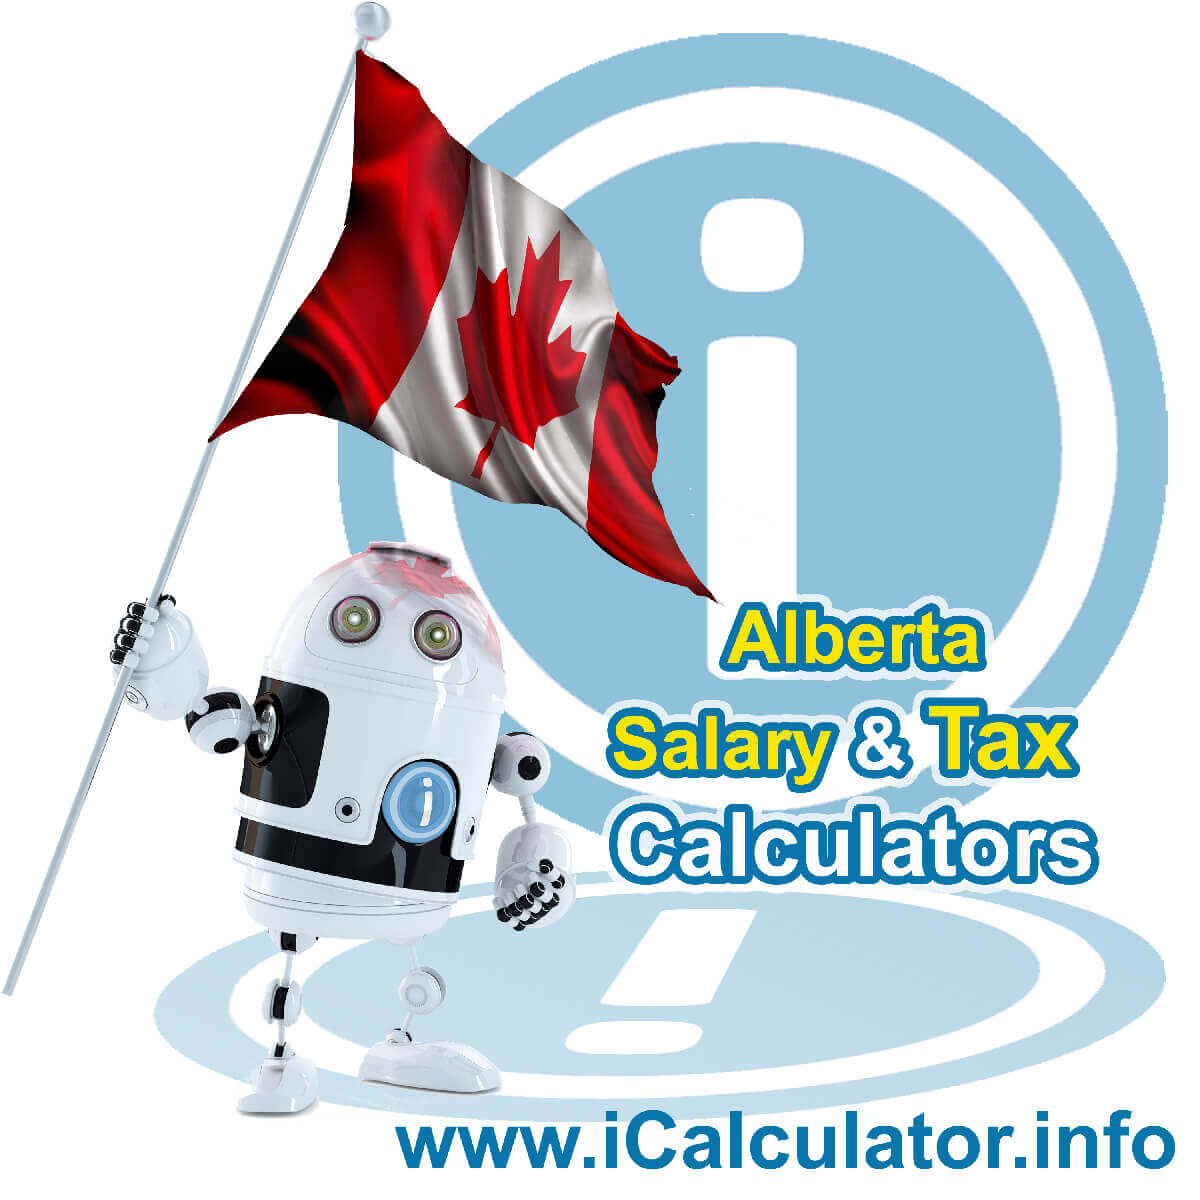 Alberta 2020 Salary Comparison Calculator. This image shows the Alberta flag and information relating to the tax formula used in the Alberta 2020 Salary Comparison Calculator